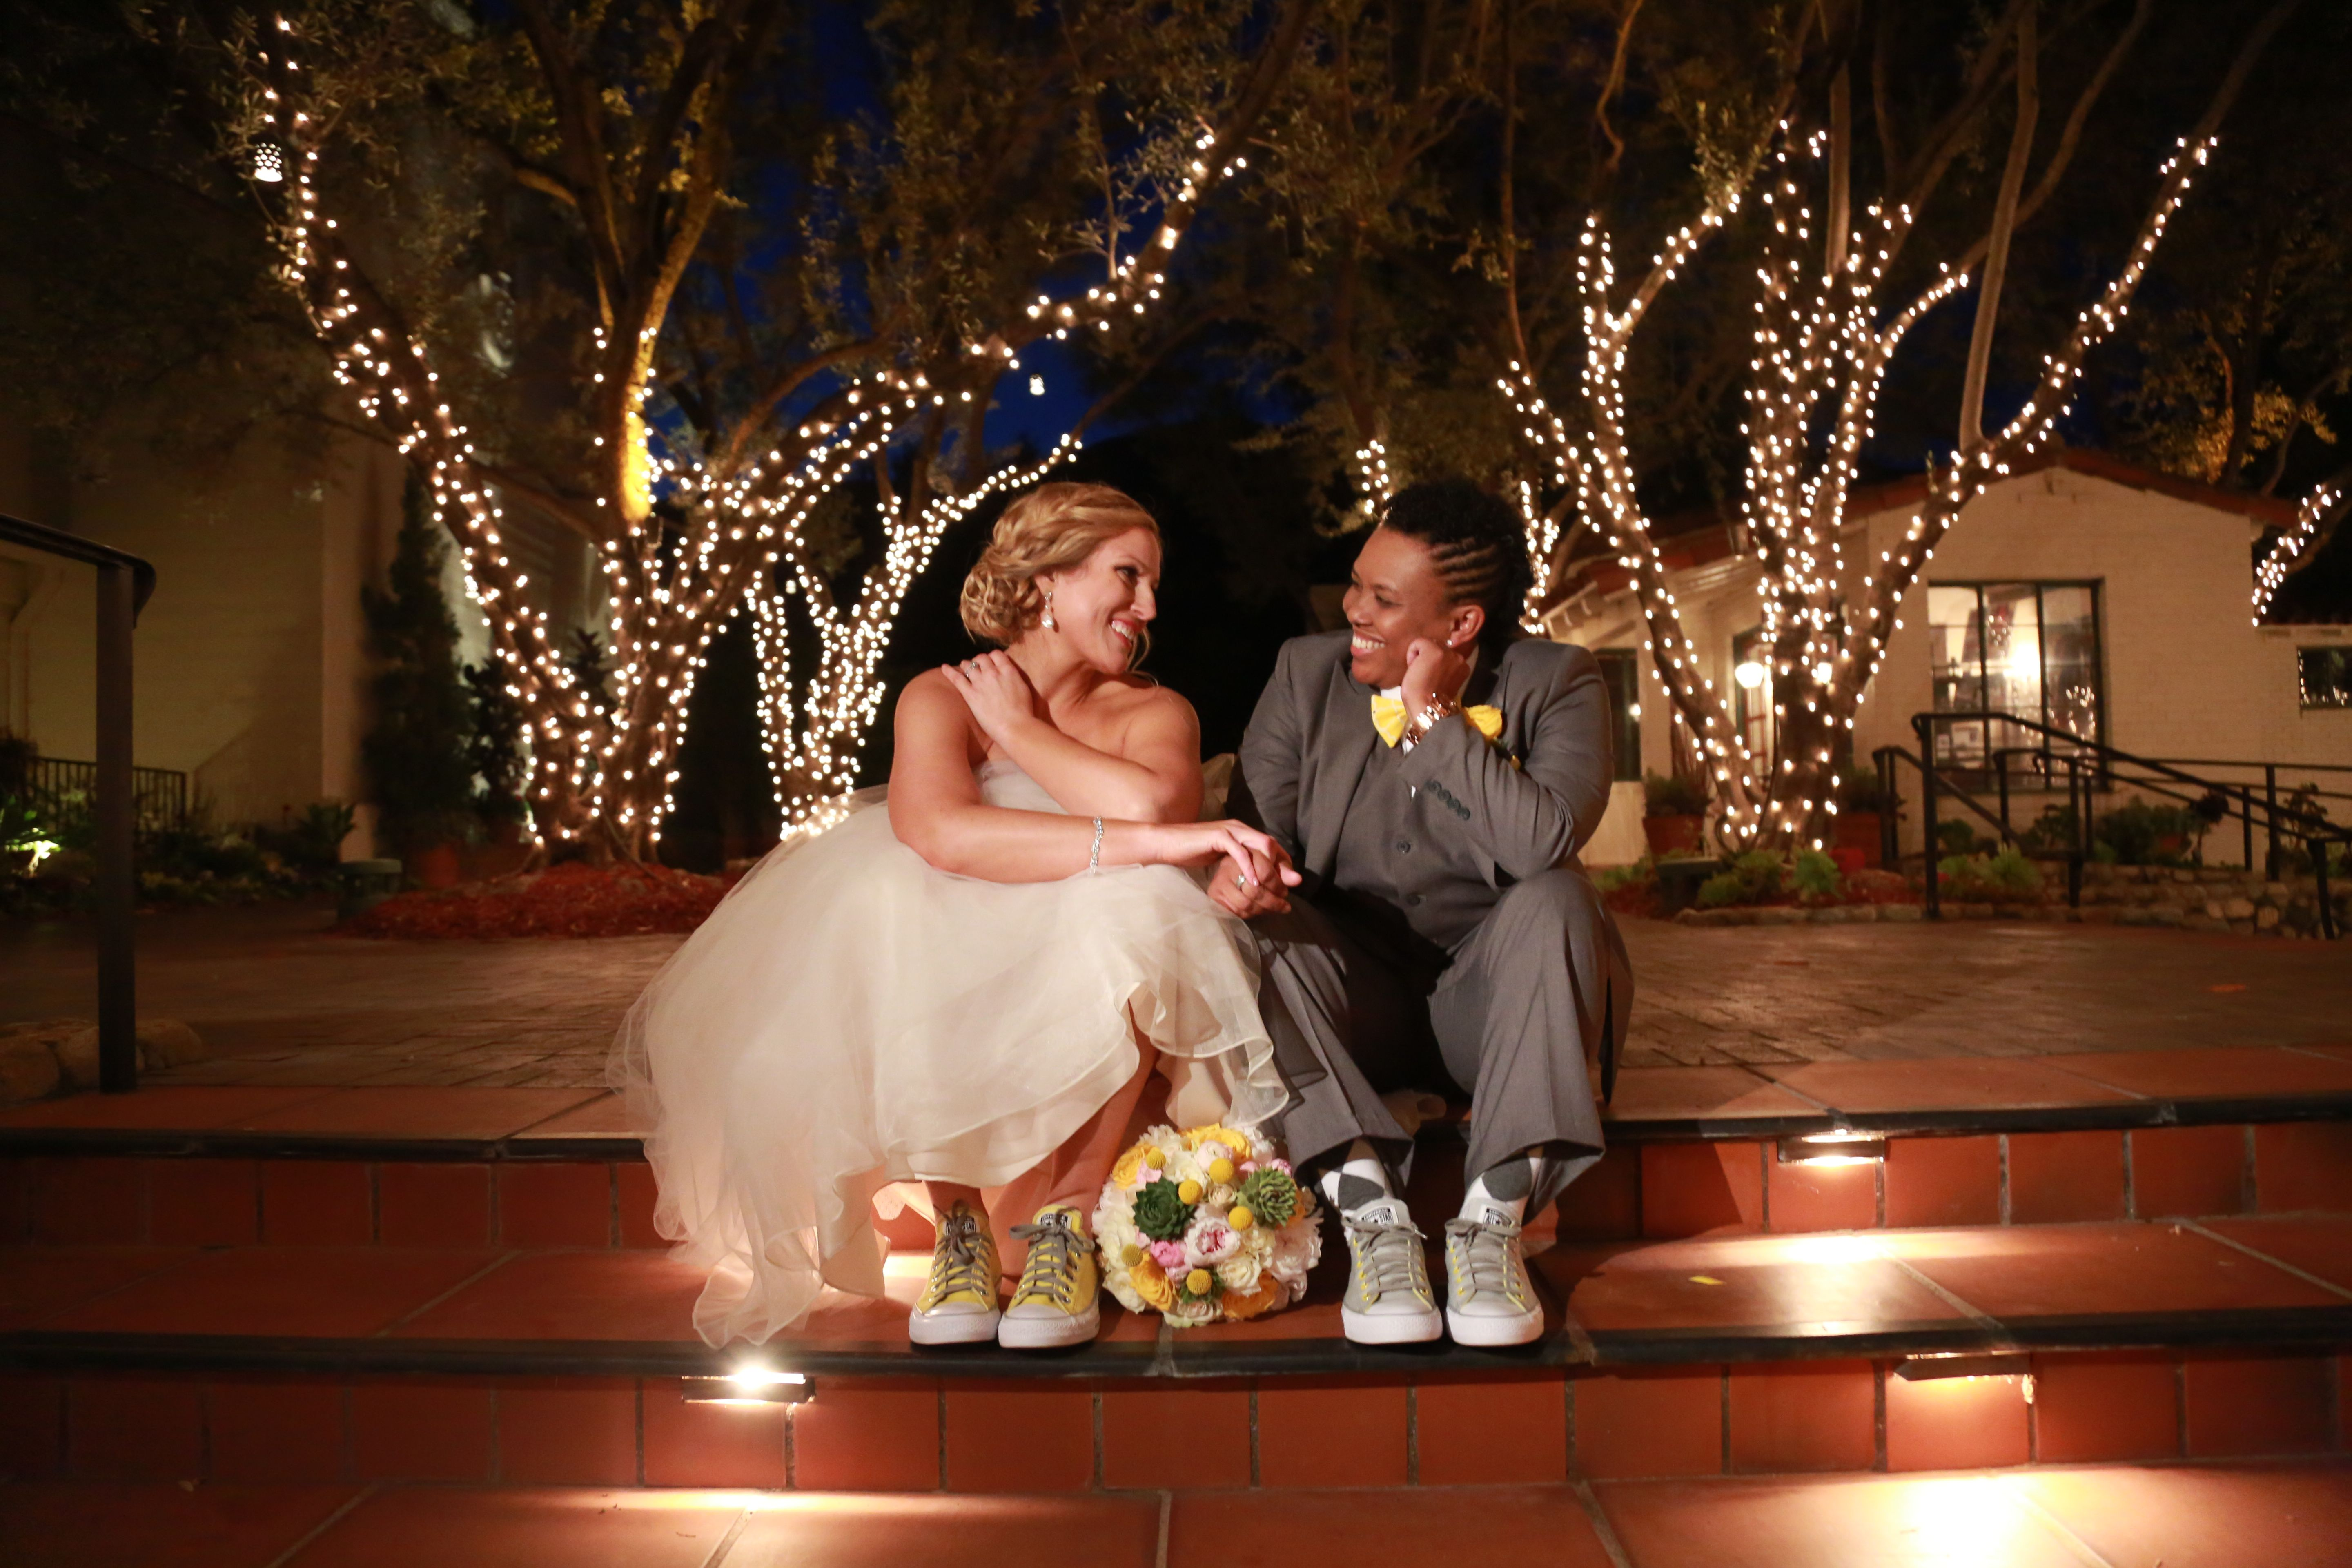 Romantic pose with Converse